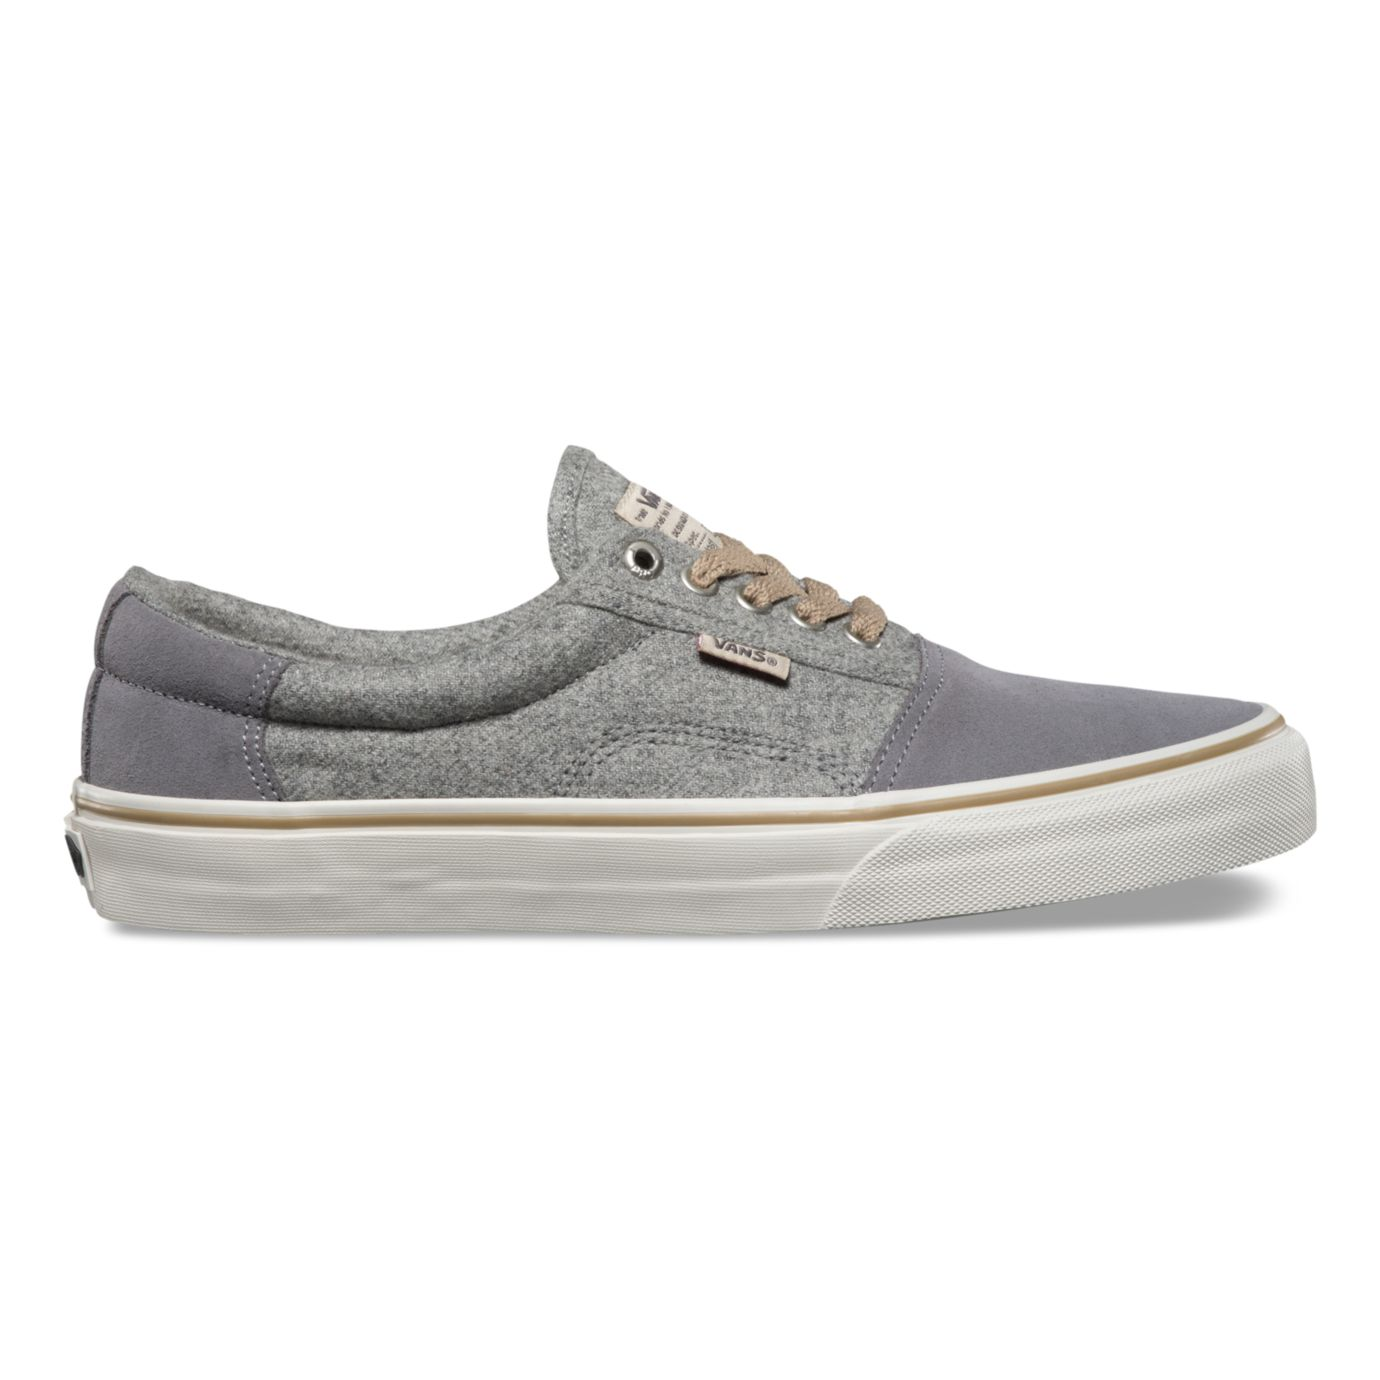 af9c334510457d Vans Expands Geoff Rowley s Signature Footwear and Apparel Collection